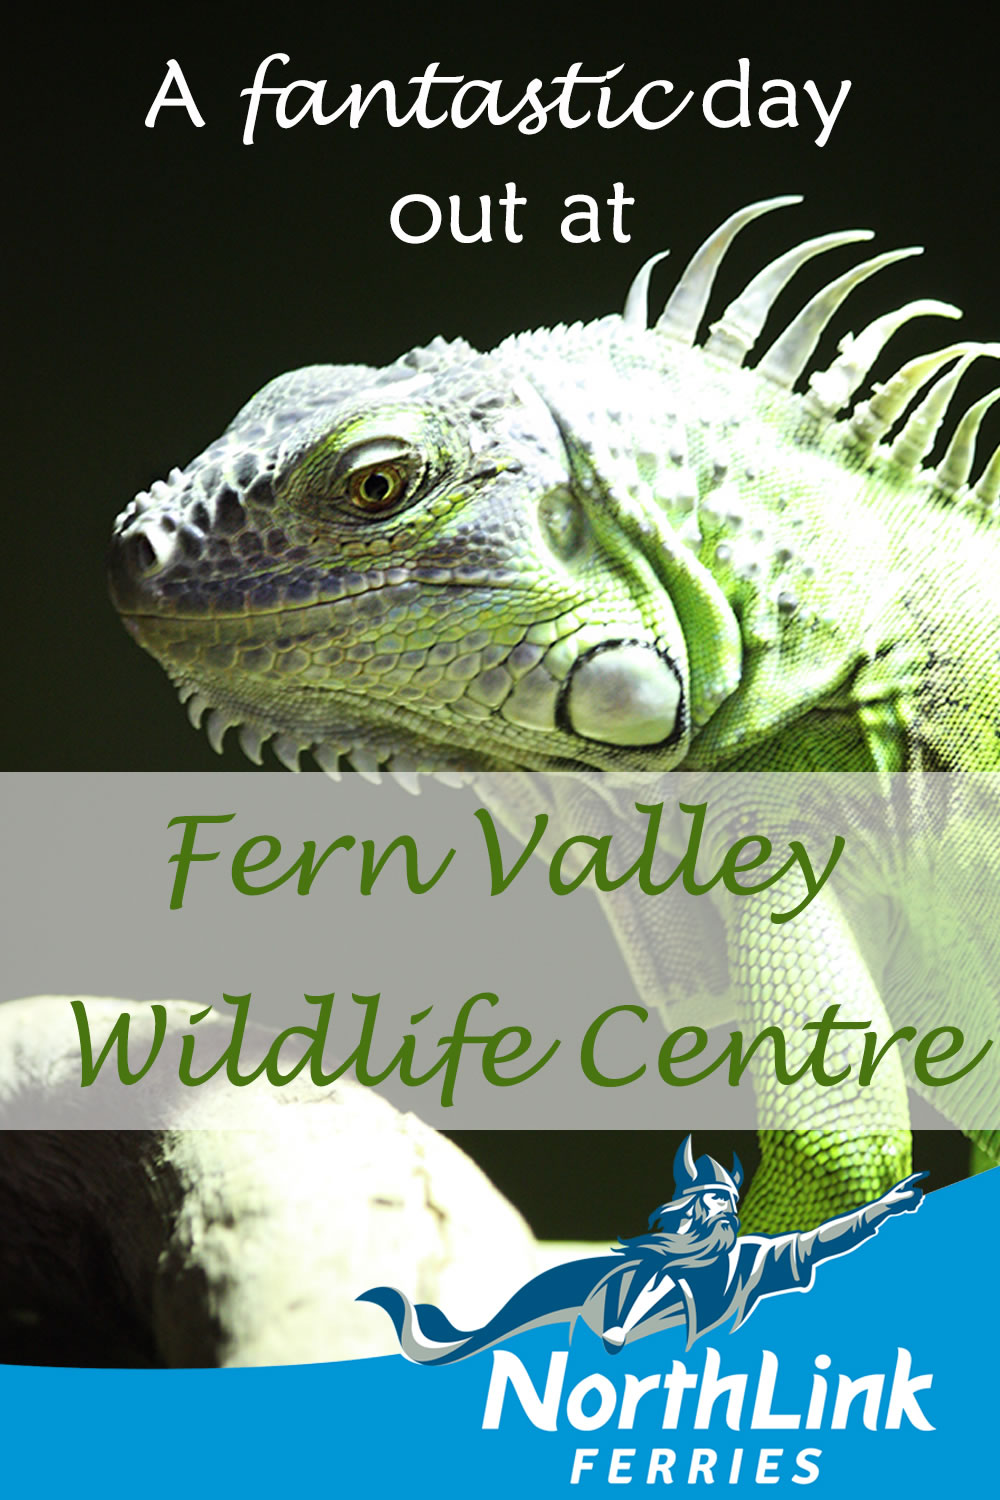 A fantastic day out at Fern Valley Wildlife Centre